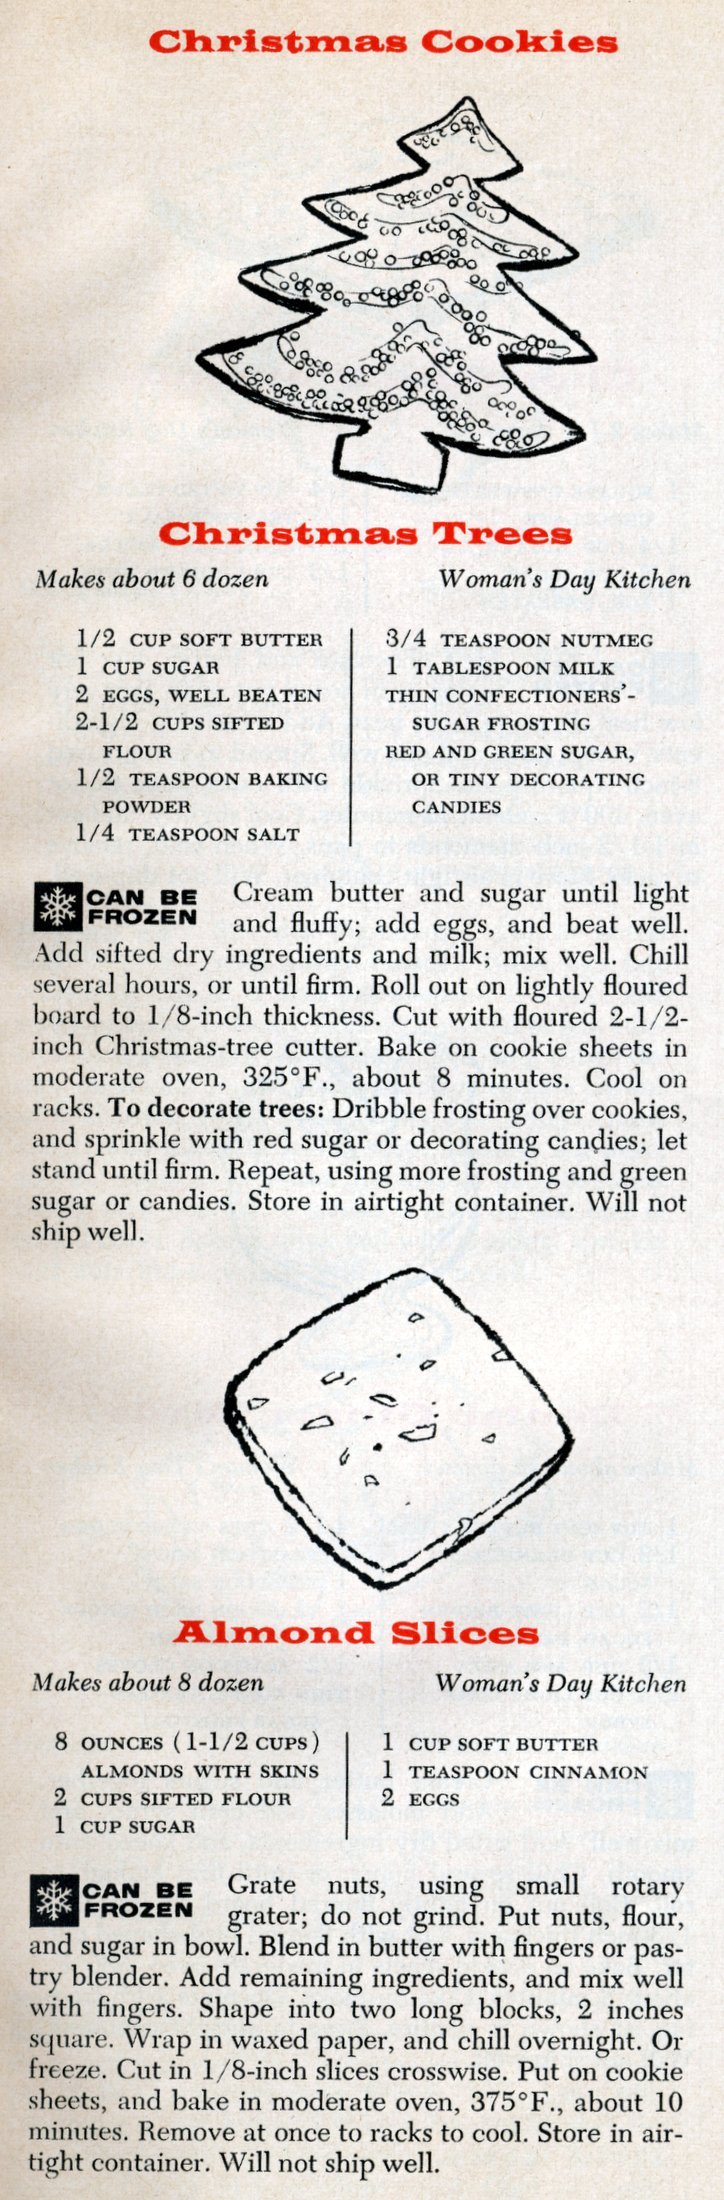 6 of the best classic Christmas cookies we know - from 1956 (3)